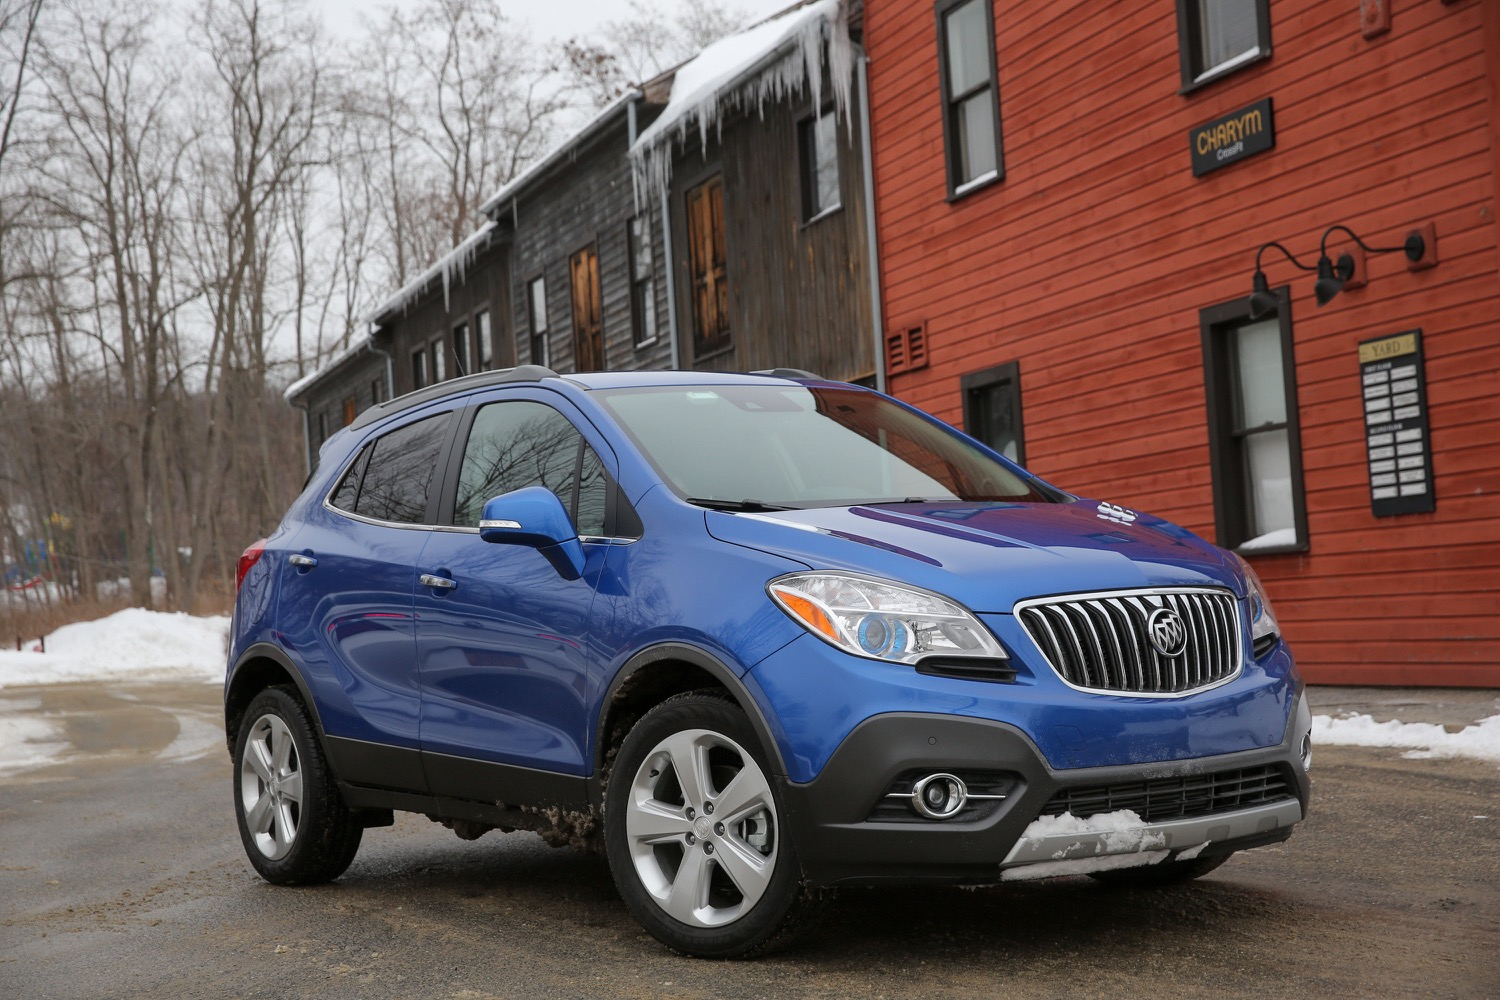 2016 Buick Encore Info, Pictures, Specs, Wiki | Gm Authority 2022 Buick Encore Oil Capacity, Owner's Manual, Color Options